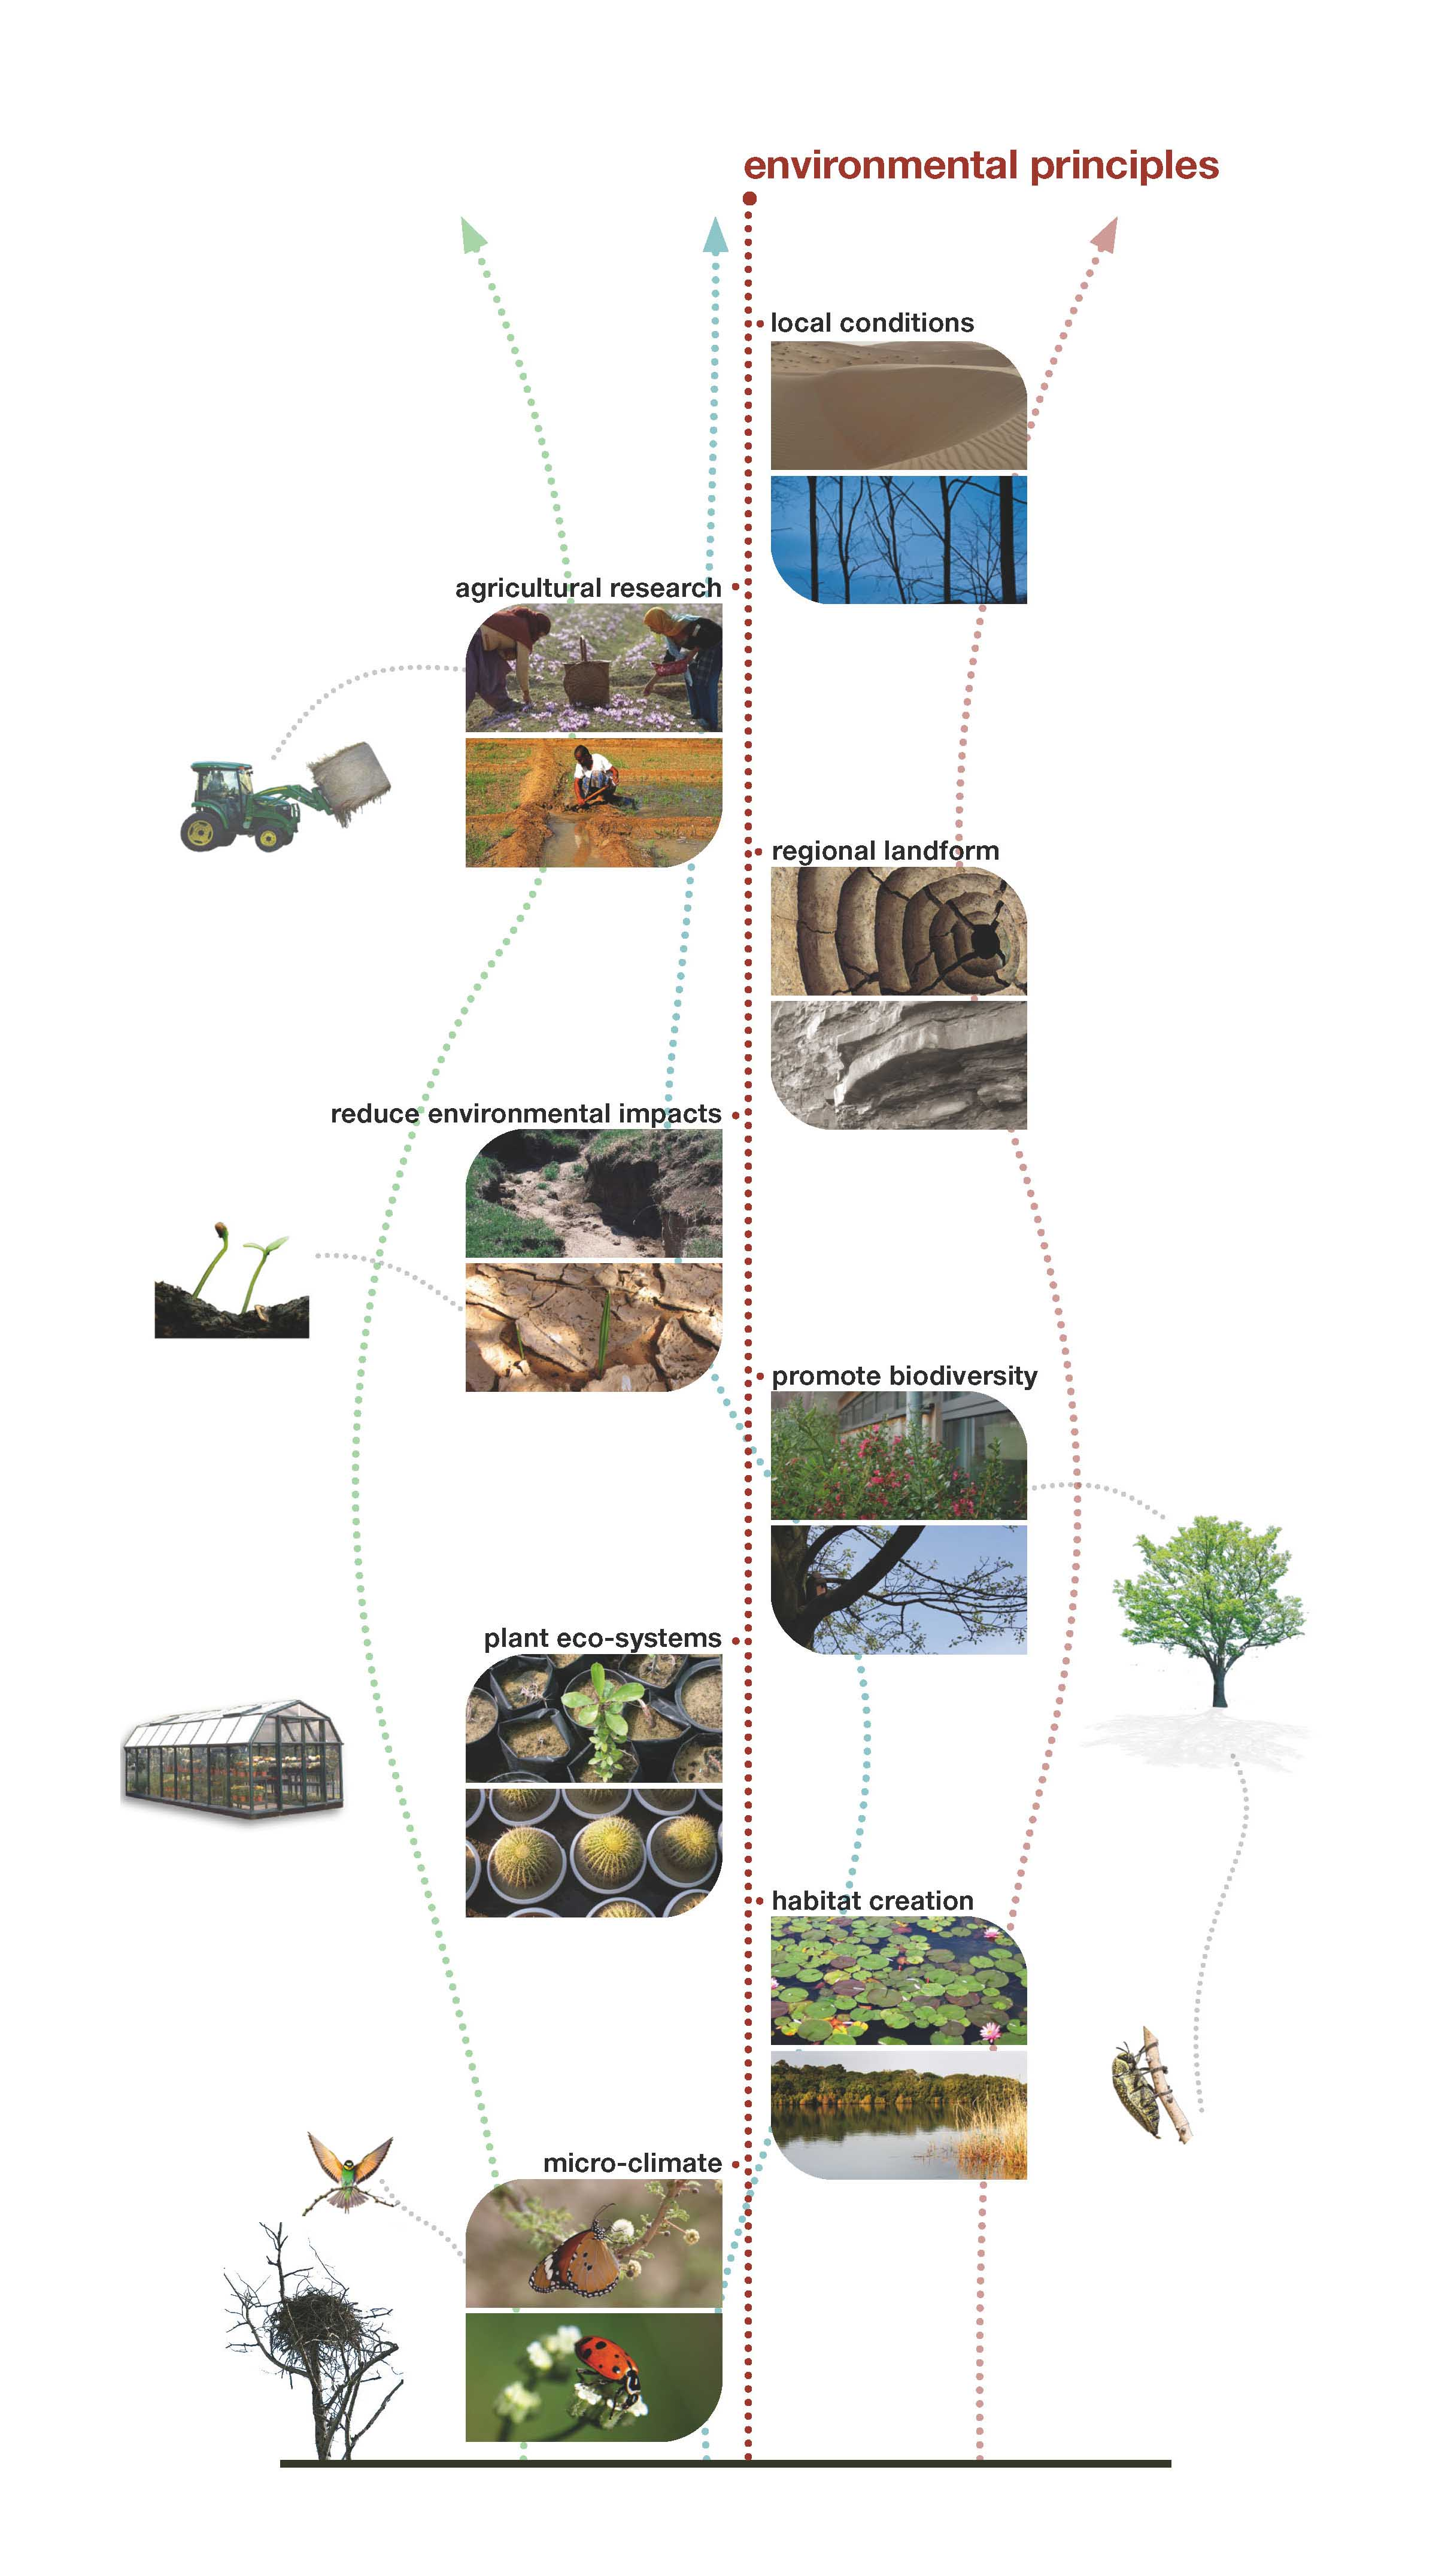 Sustainable diagramstreched cropped.jpg